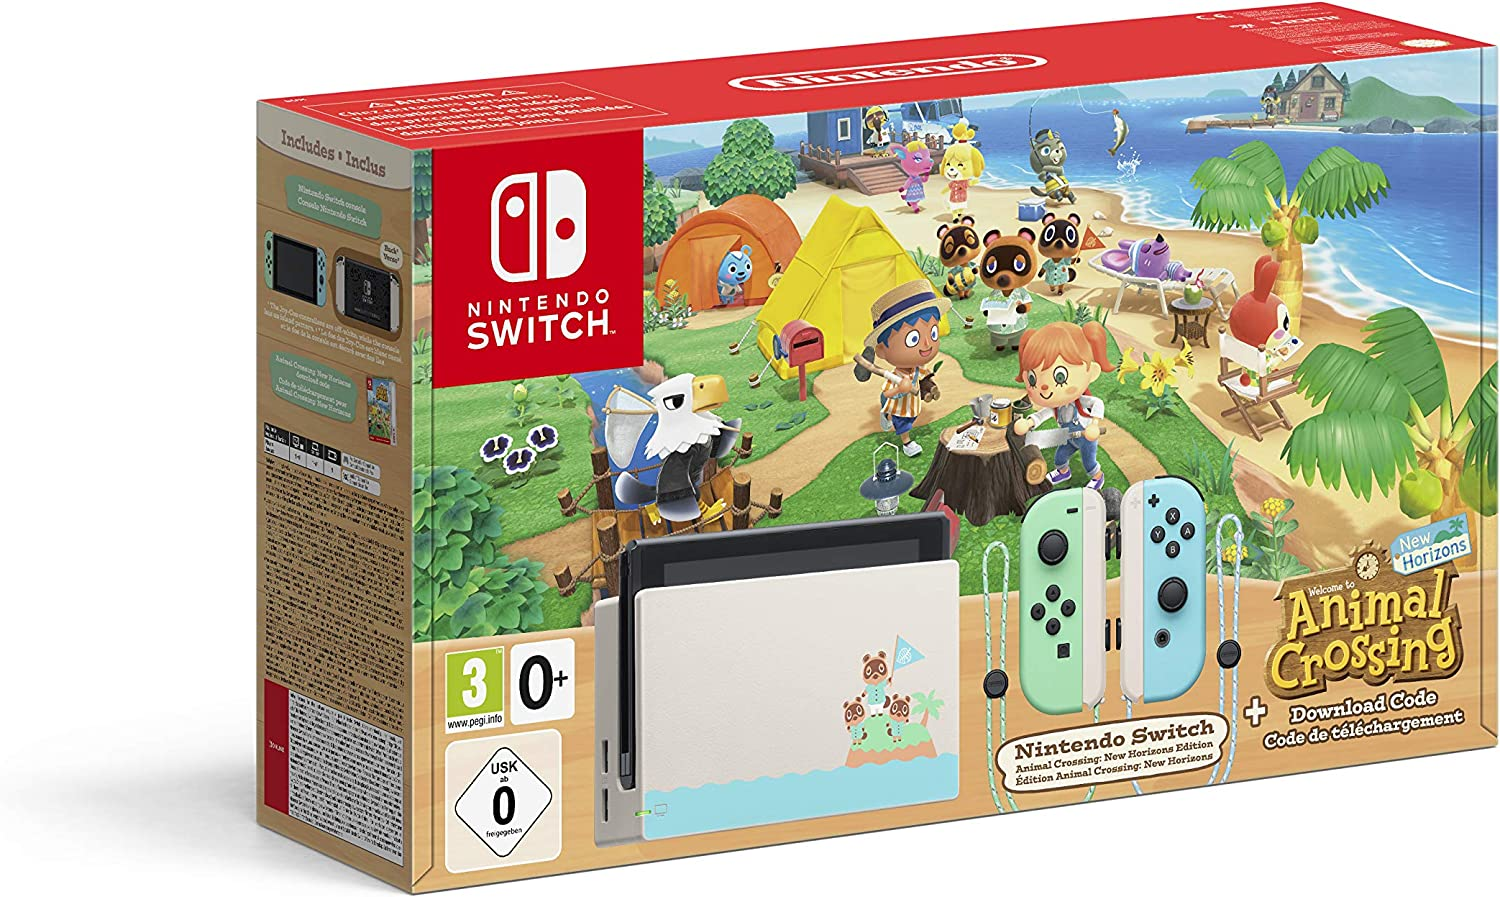 Nintendo Switch HW - Consola Edición Animal Crossing - Verde/Azul ...